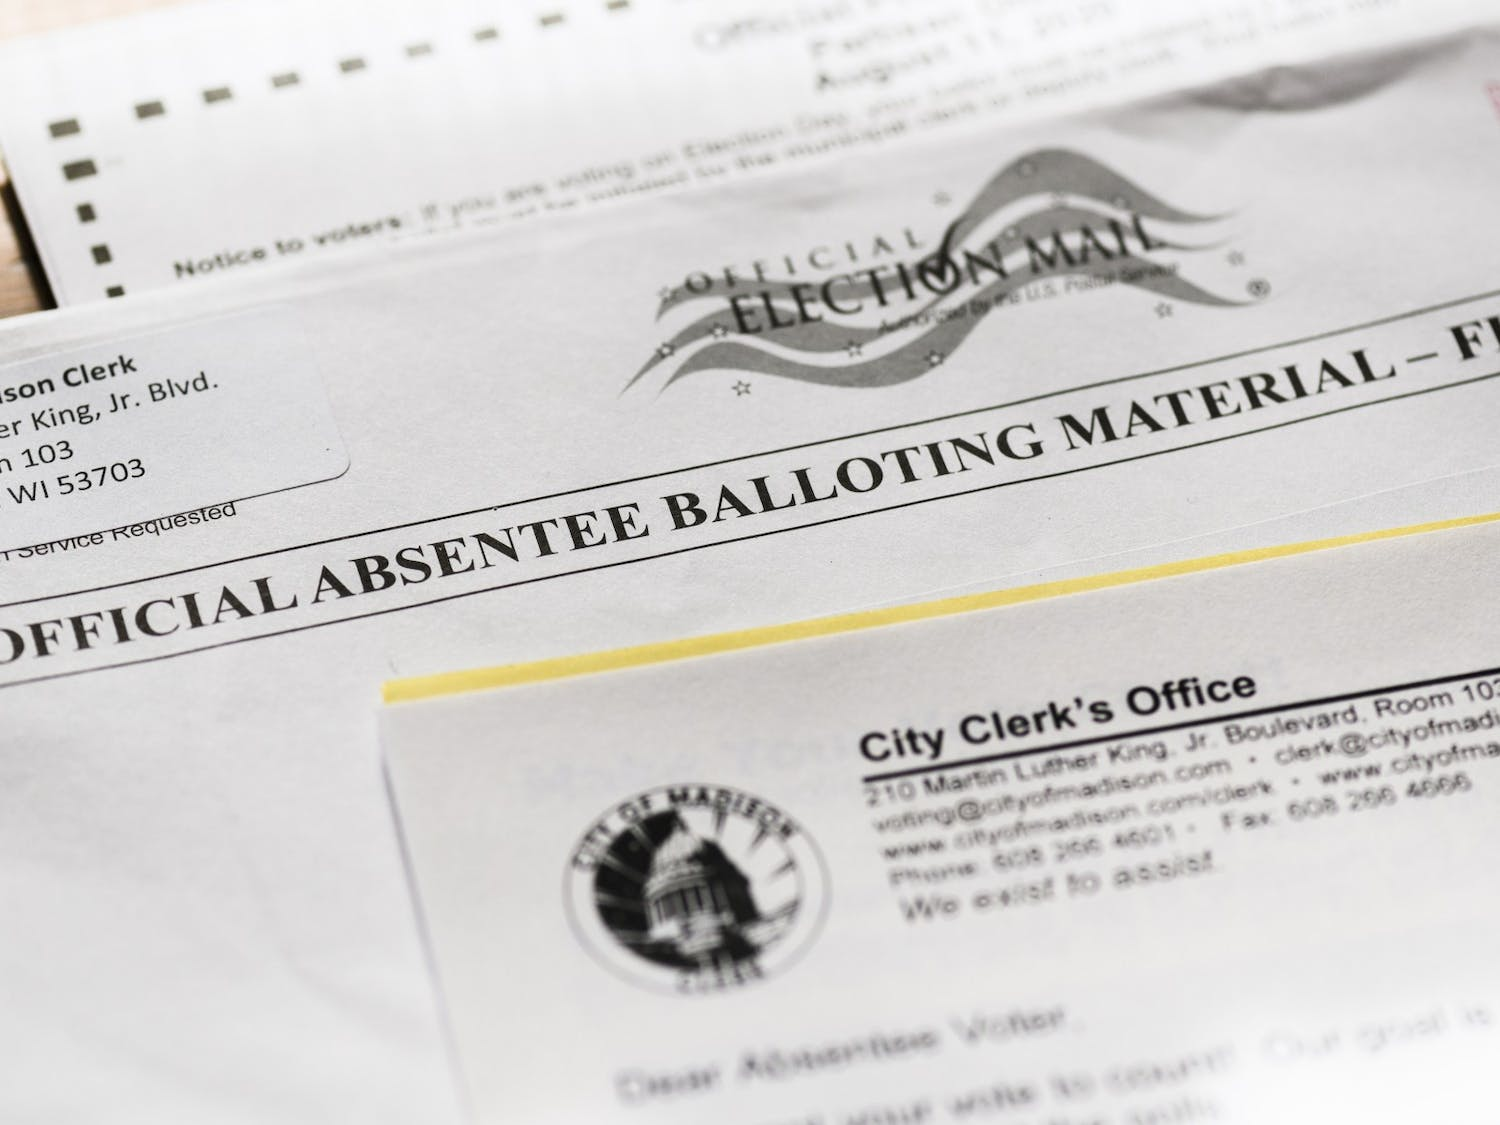 Almost two million absentee ballots have been cast in Wisconsin as the state figures to play a pivotal role in the 2020 presidential election.